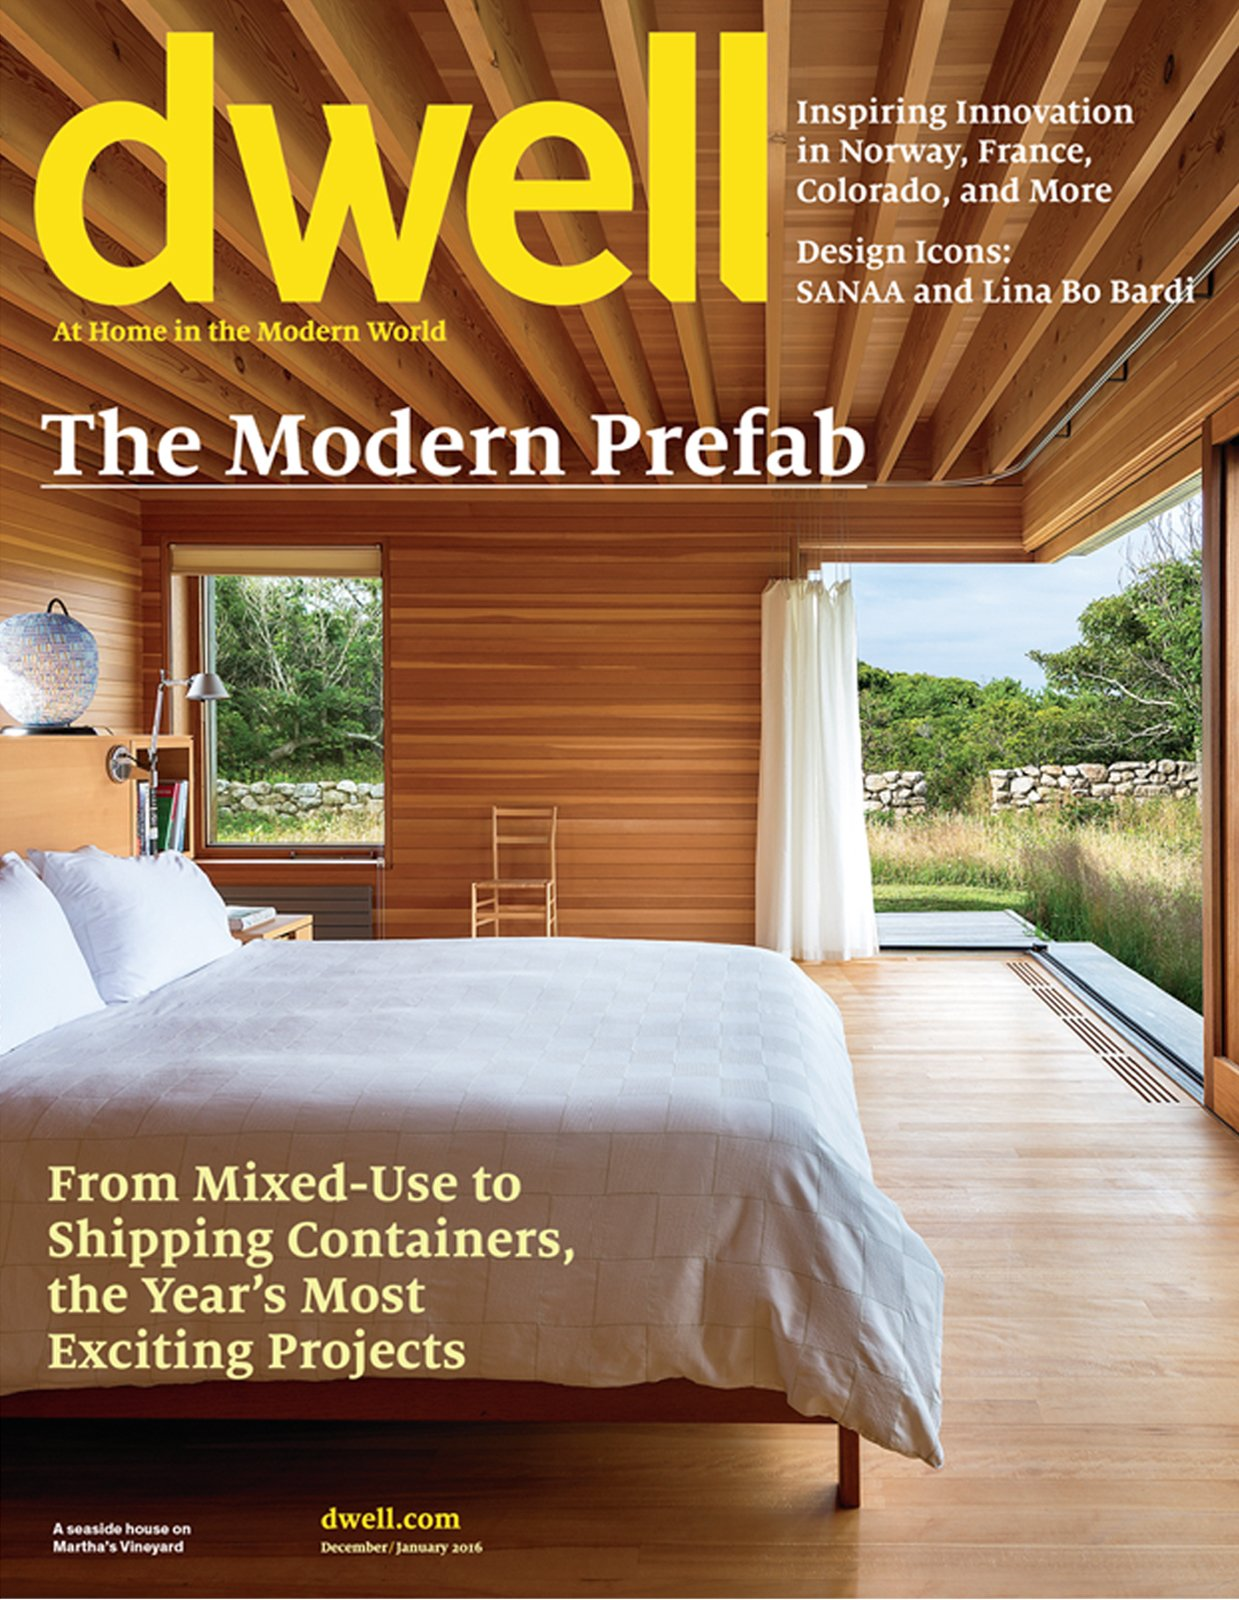 From Mixed-Use to Shipping Containers, the Year's Most Exciting Projects  Photo 11 of 11 in Dwell Magazine 2016 Issues